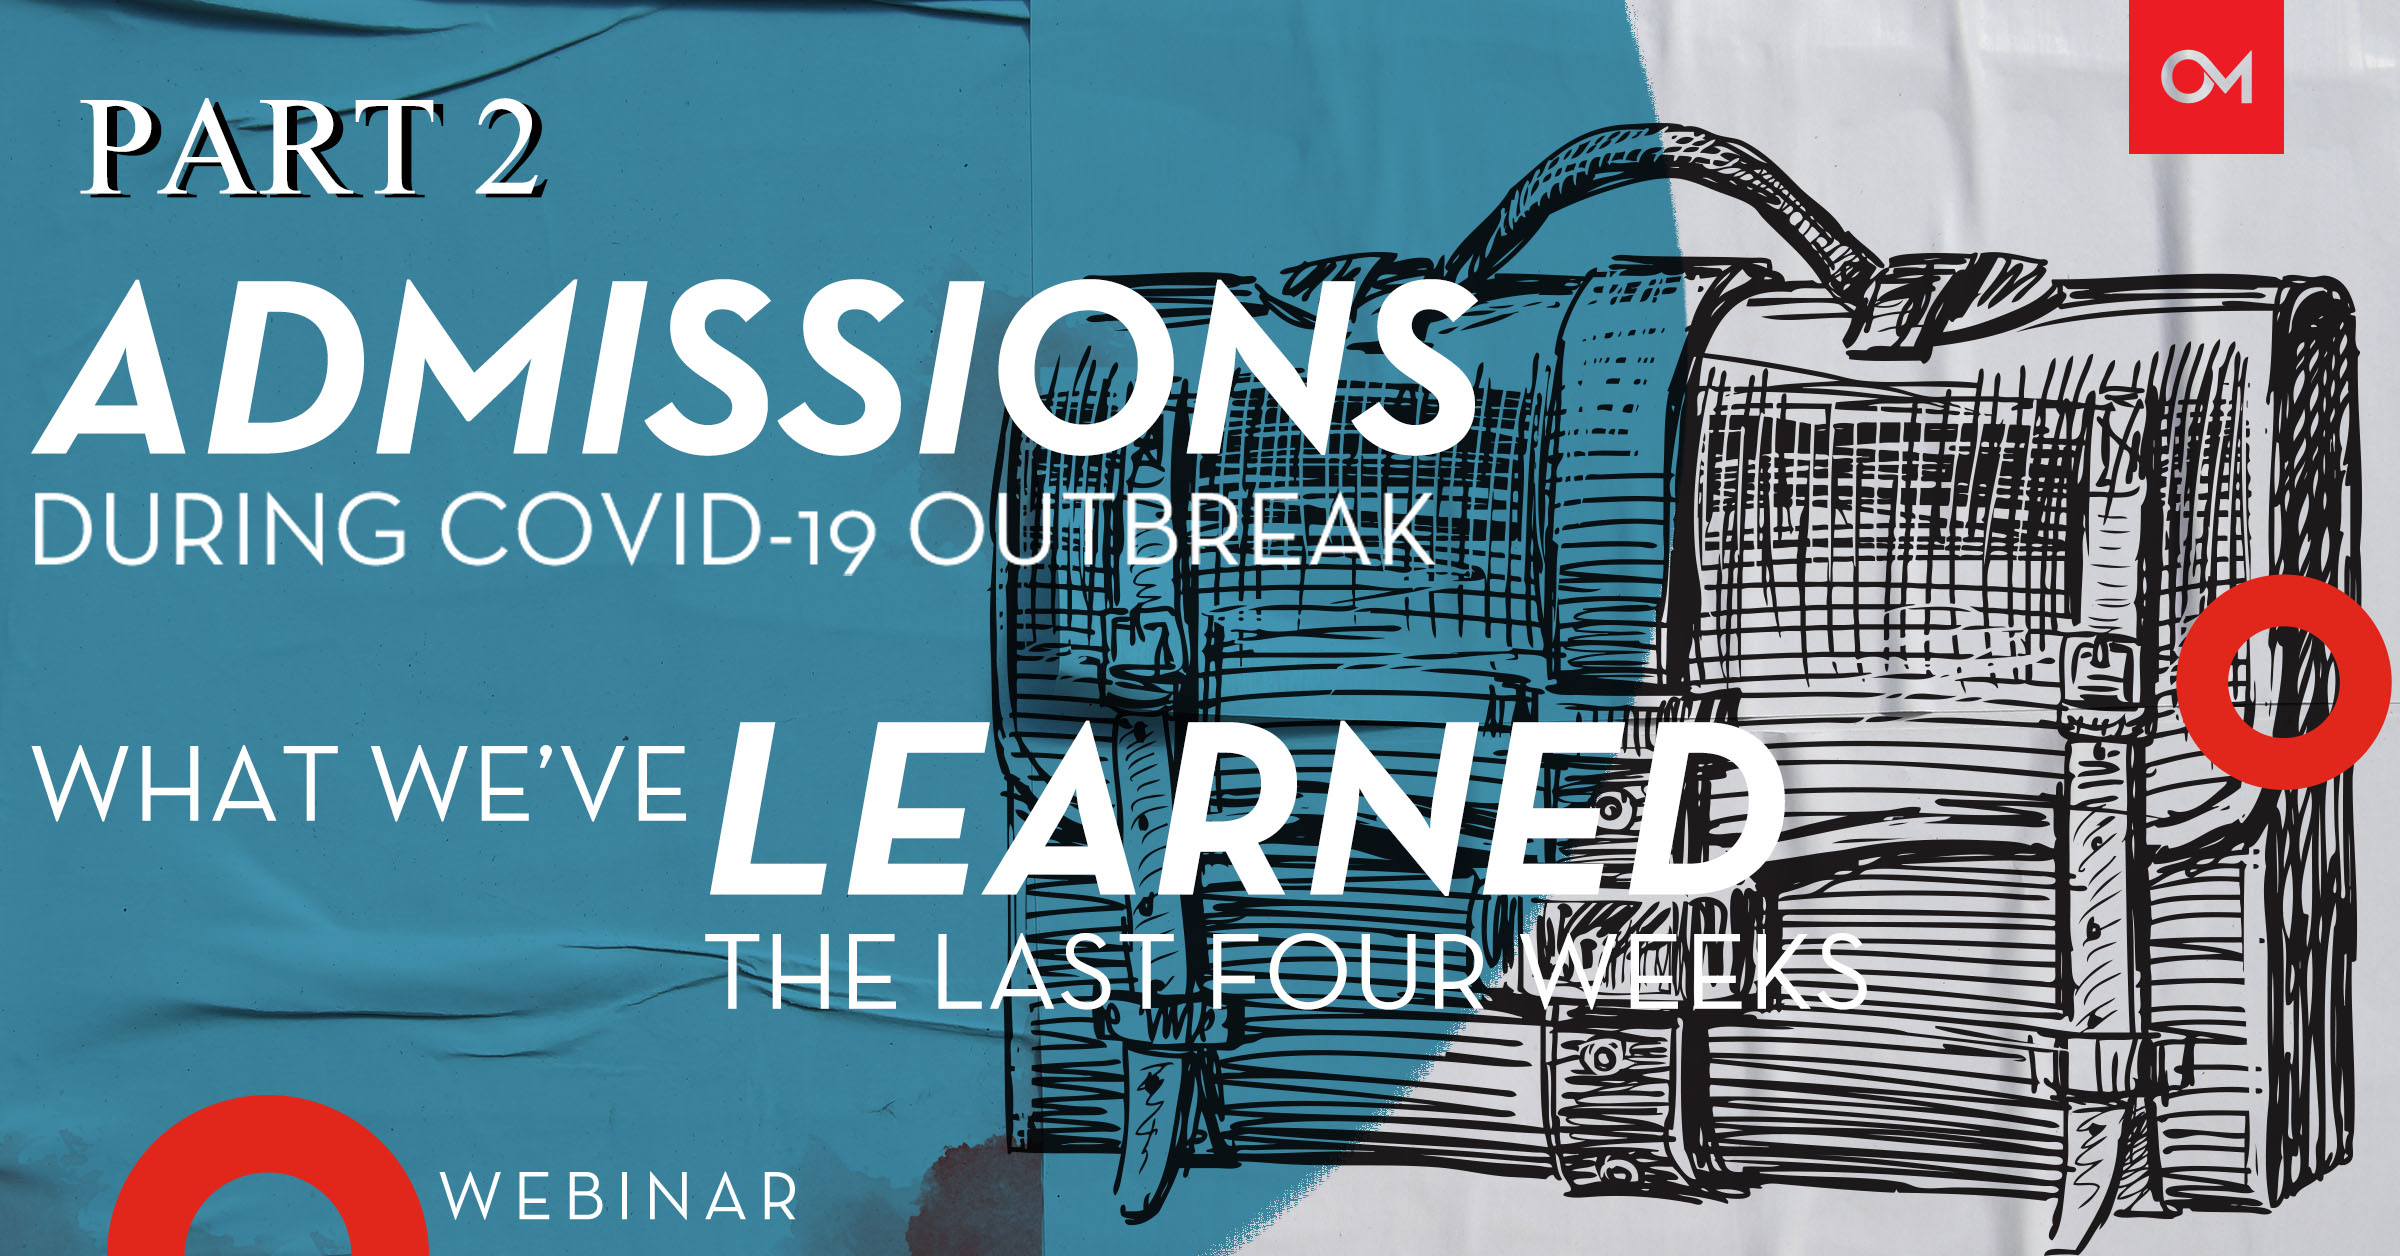 Part 2 of what we've learned about admissions during COVID-19.